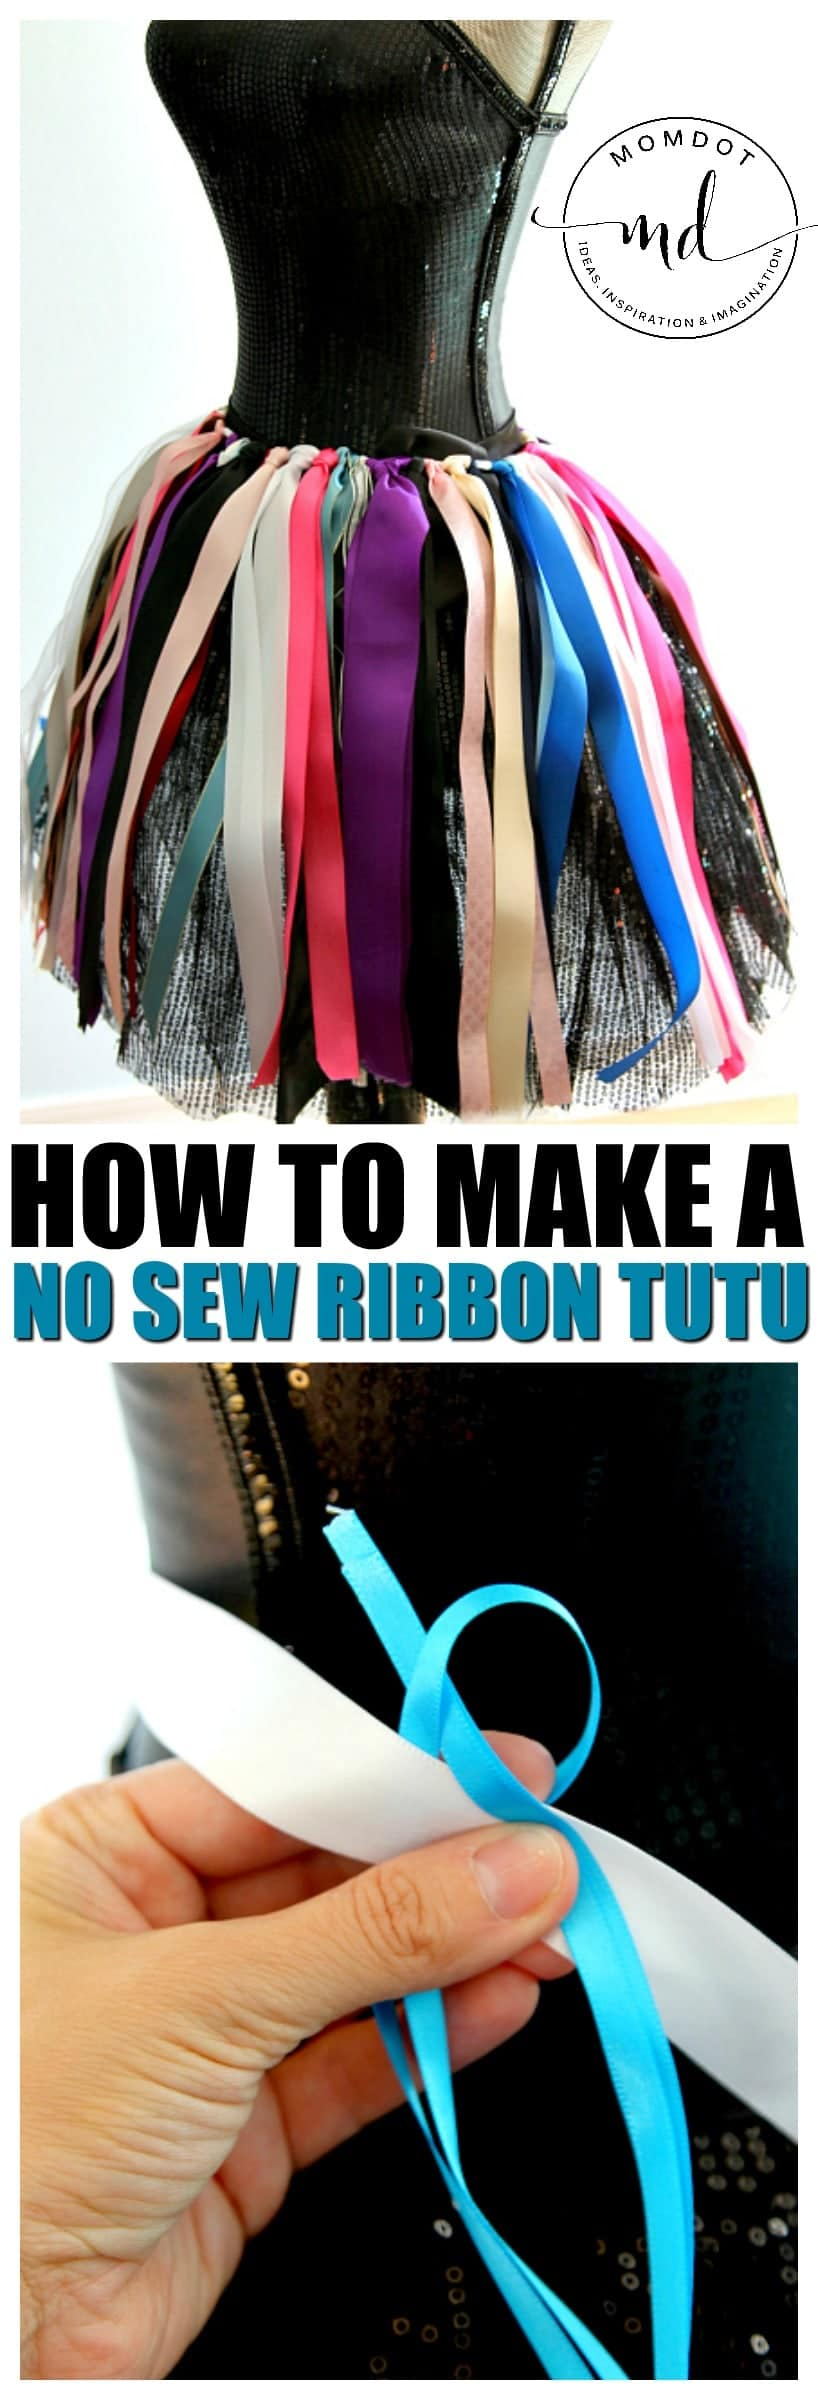 How to make a ribbon tutu tutorial | Halloween costuming crafts | no sew ribbon tutu DIY